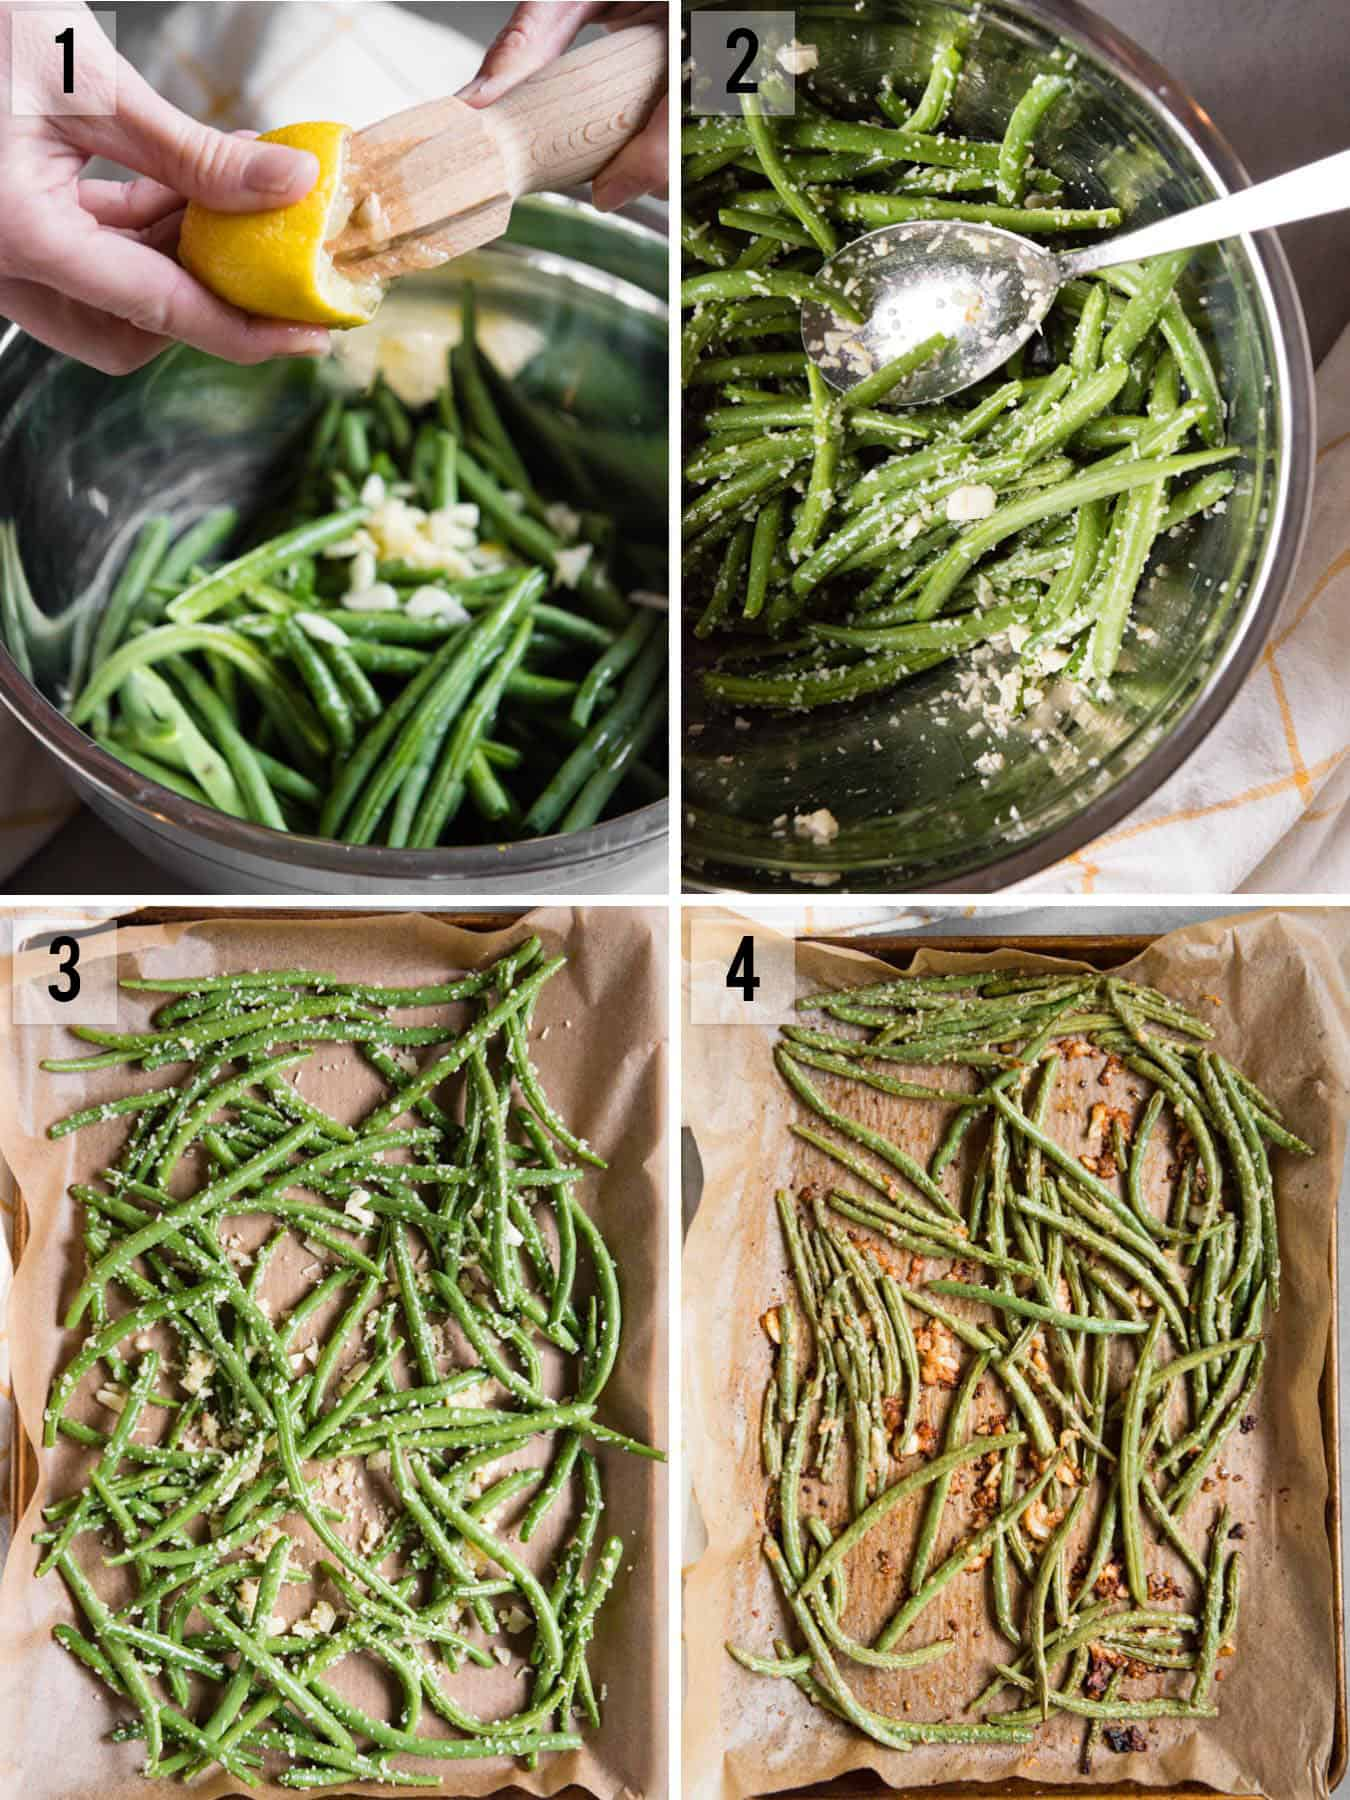 process photos for Roasted Green Beans recipe